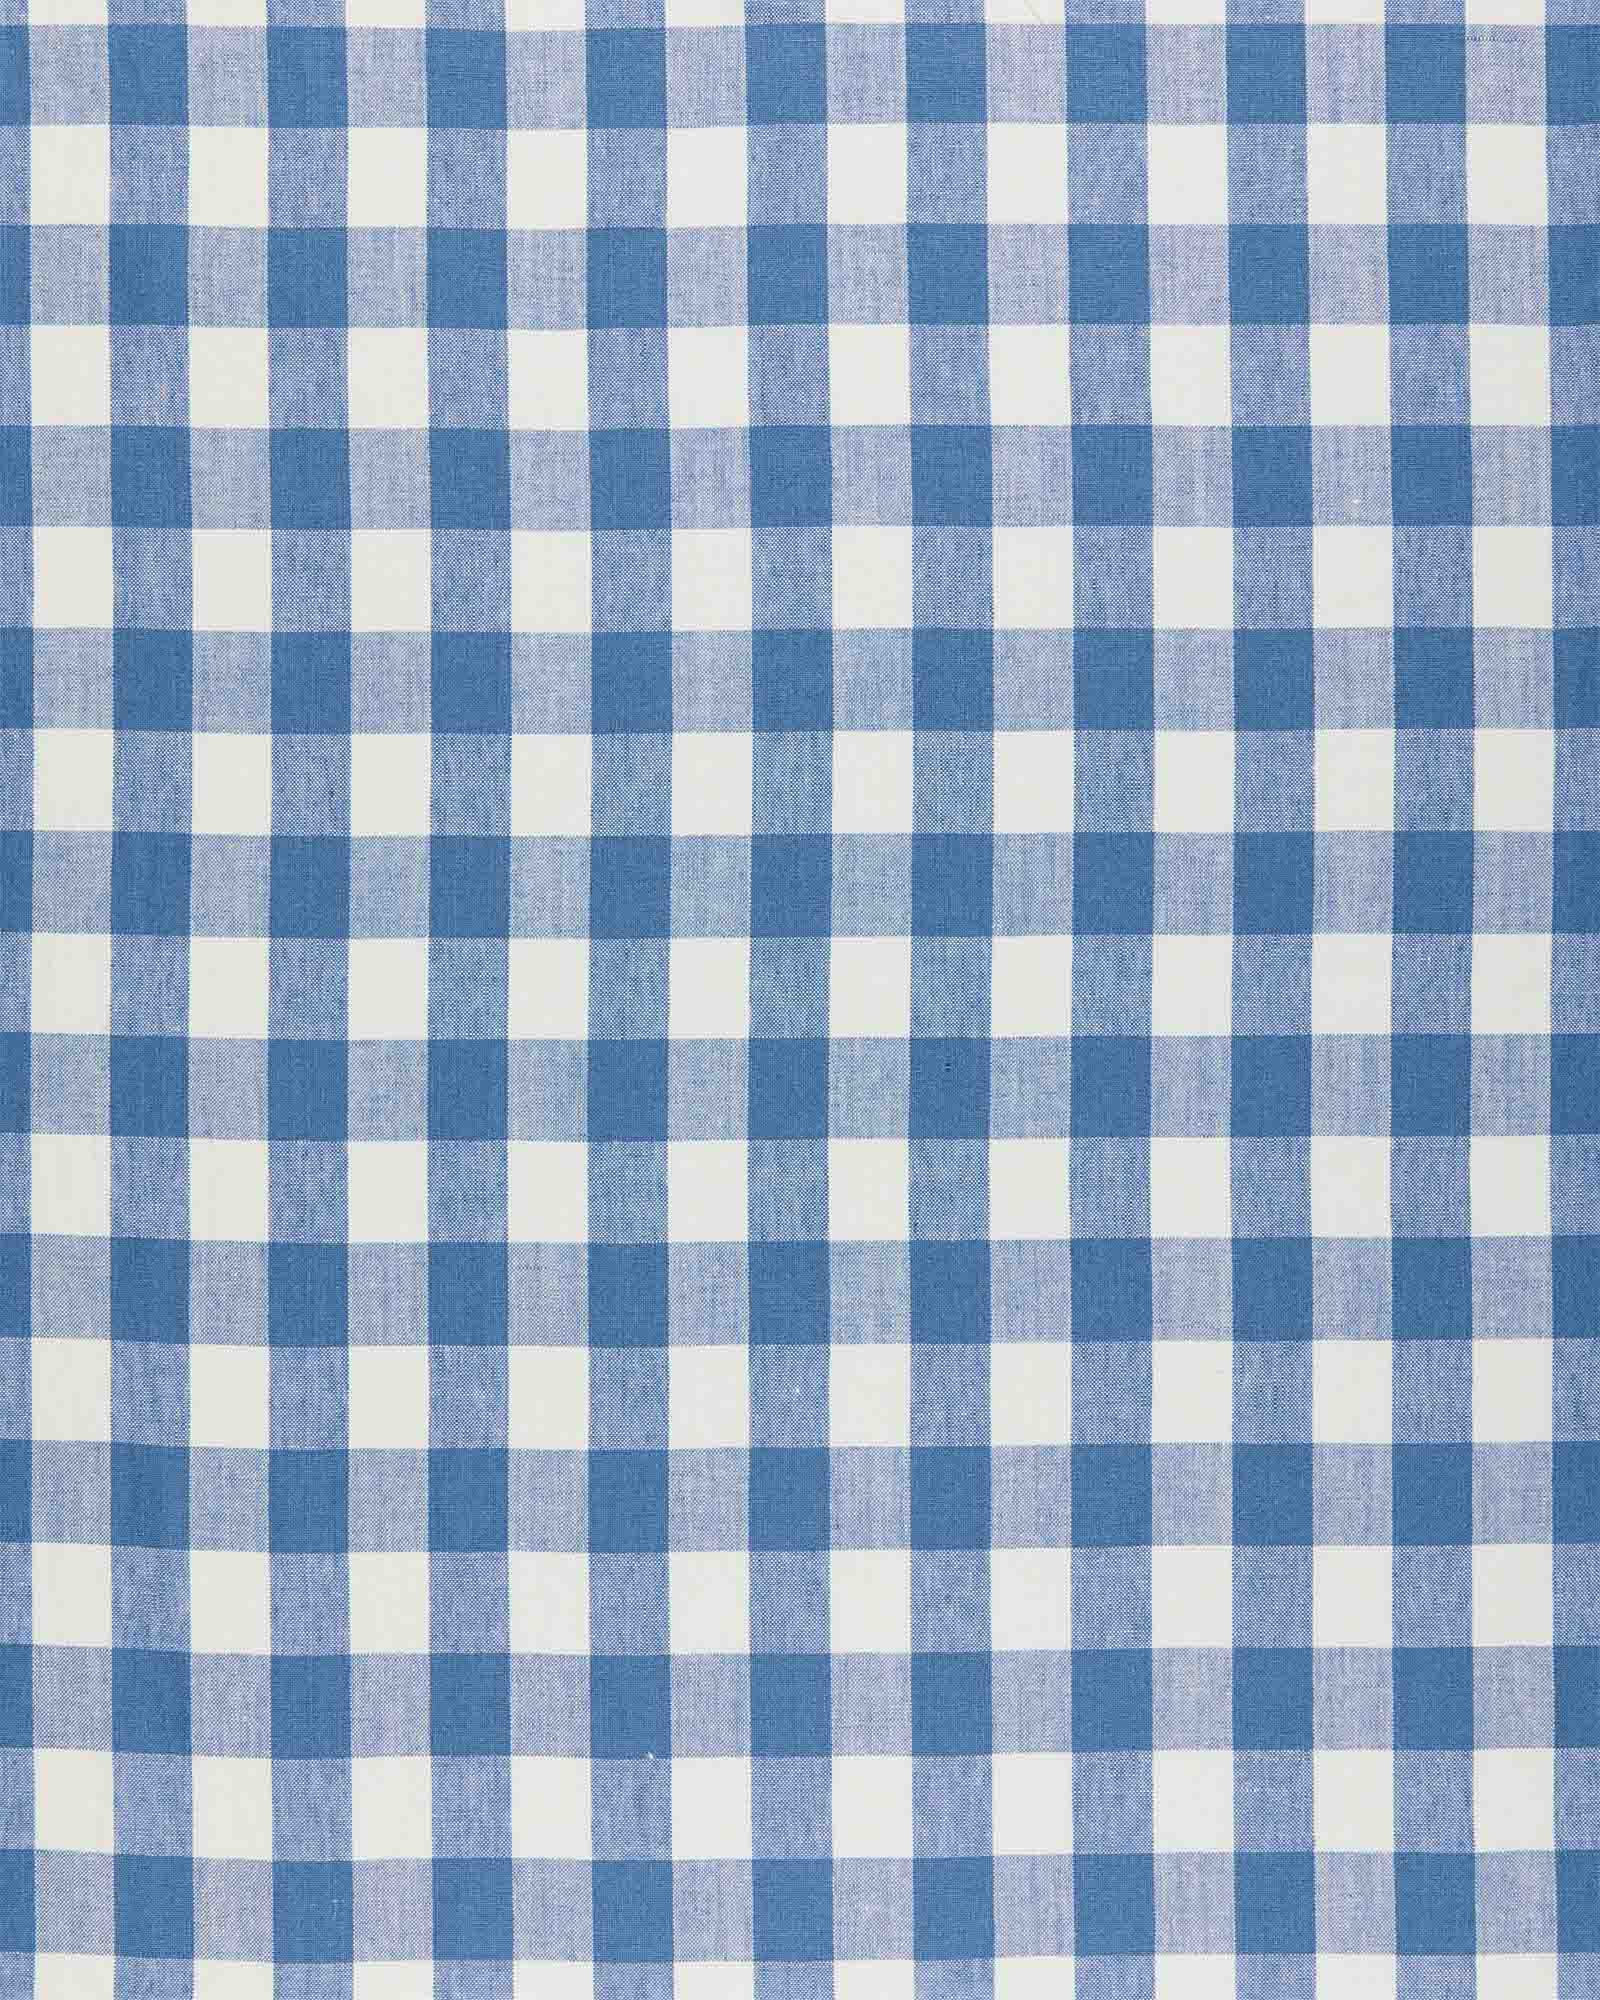 Fabric by the Yard - Classic Gingham Linen, French Blue